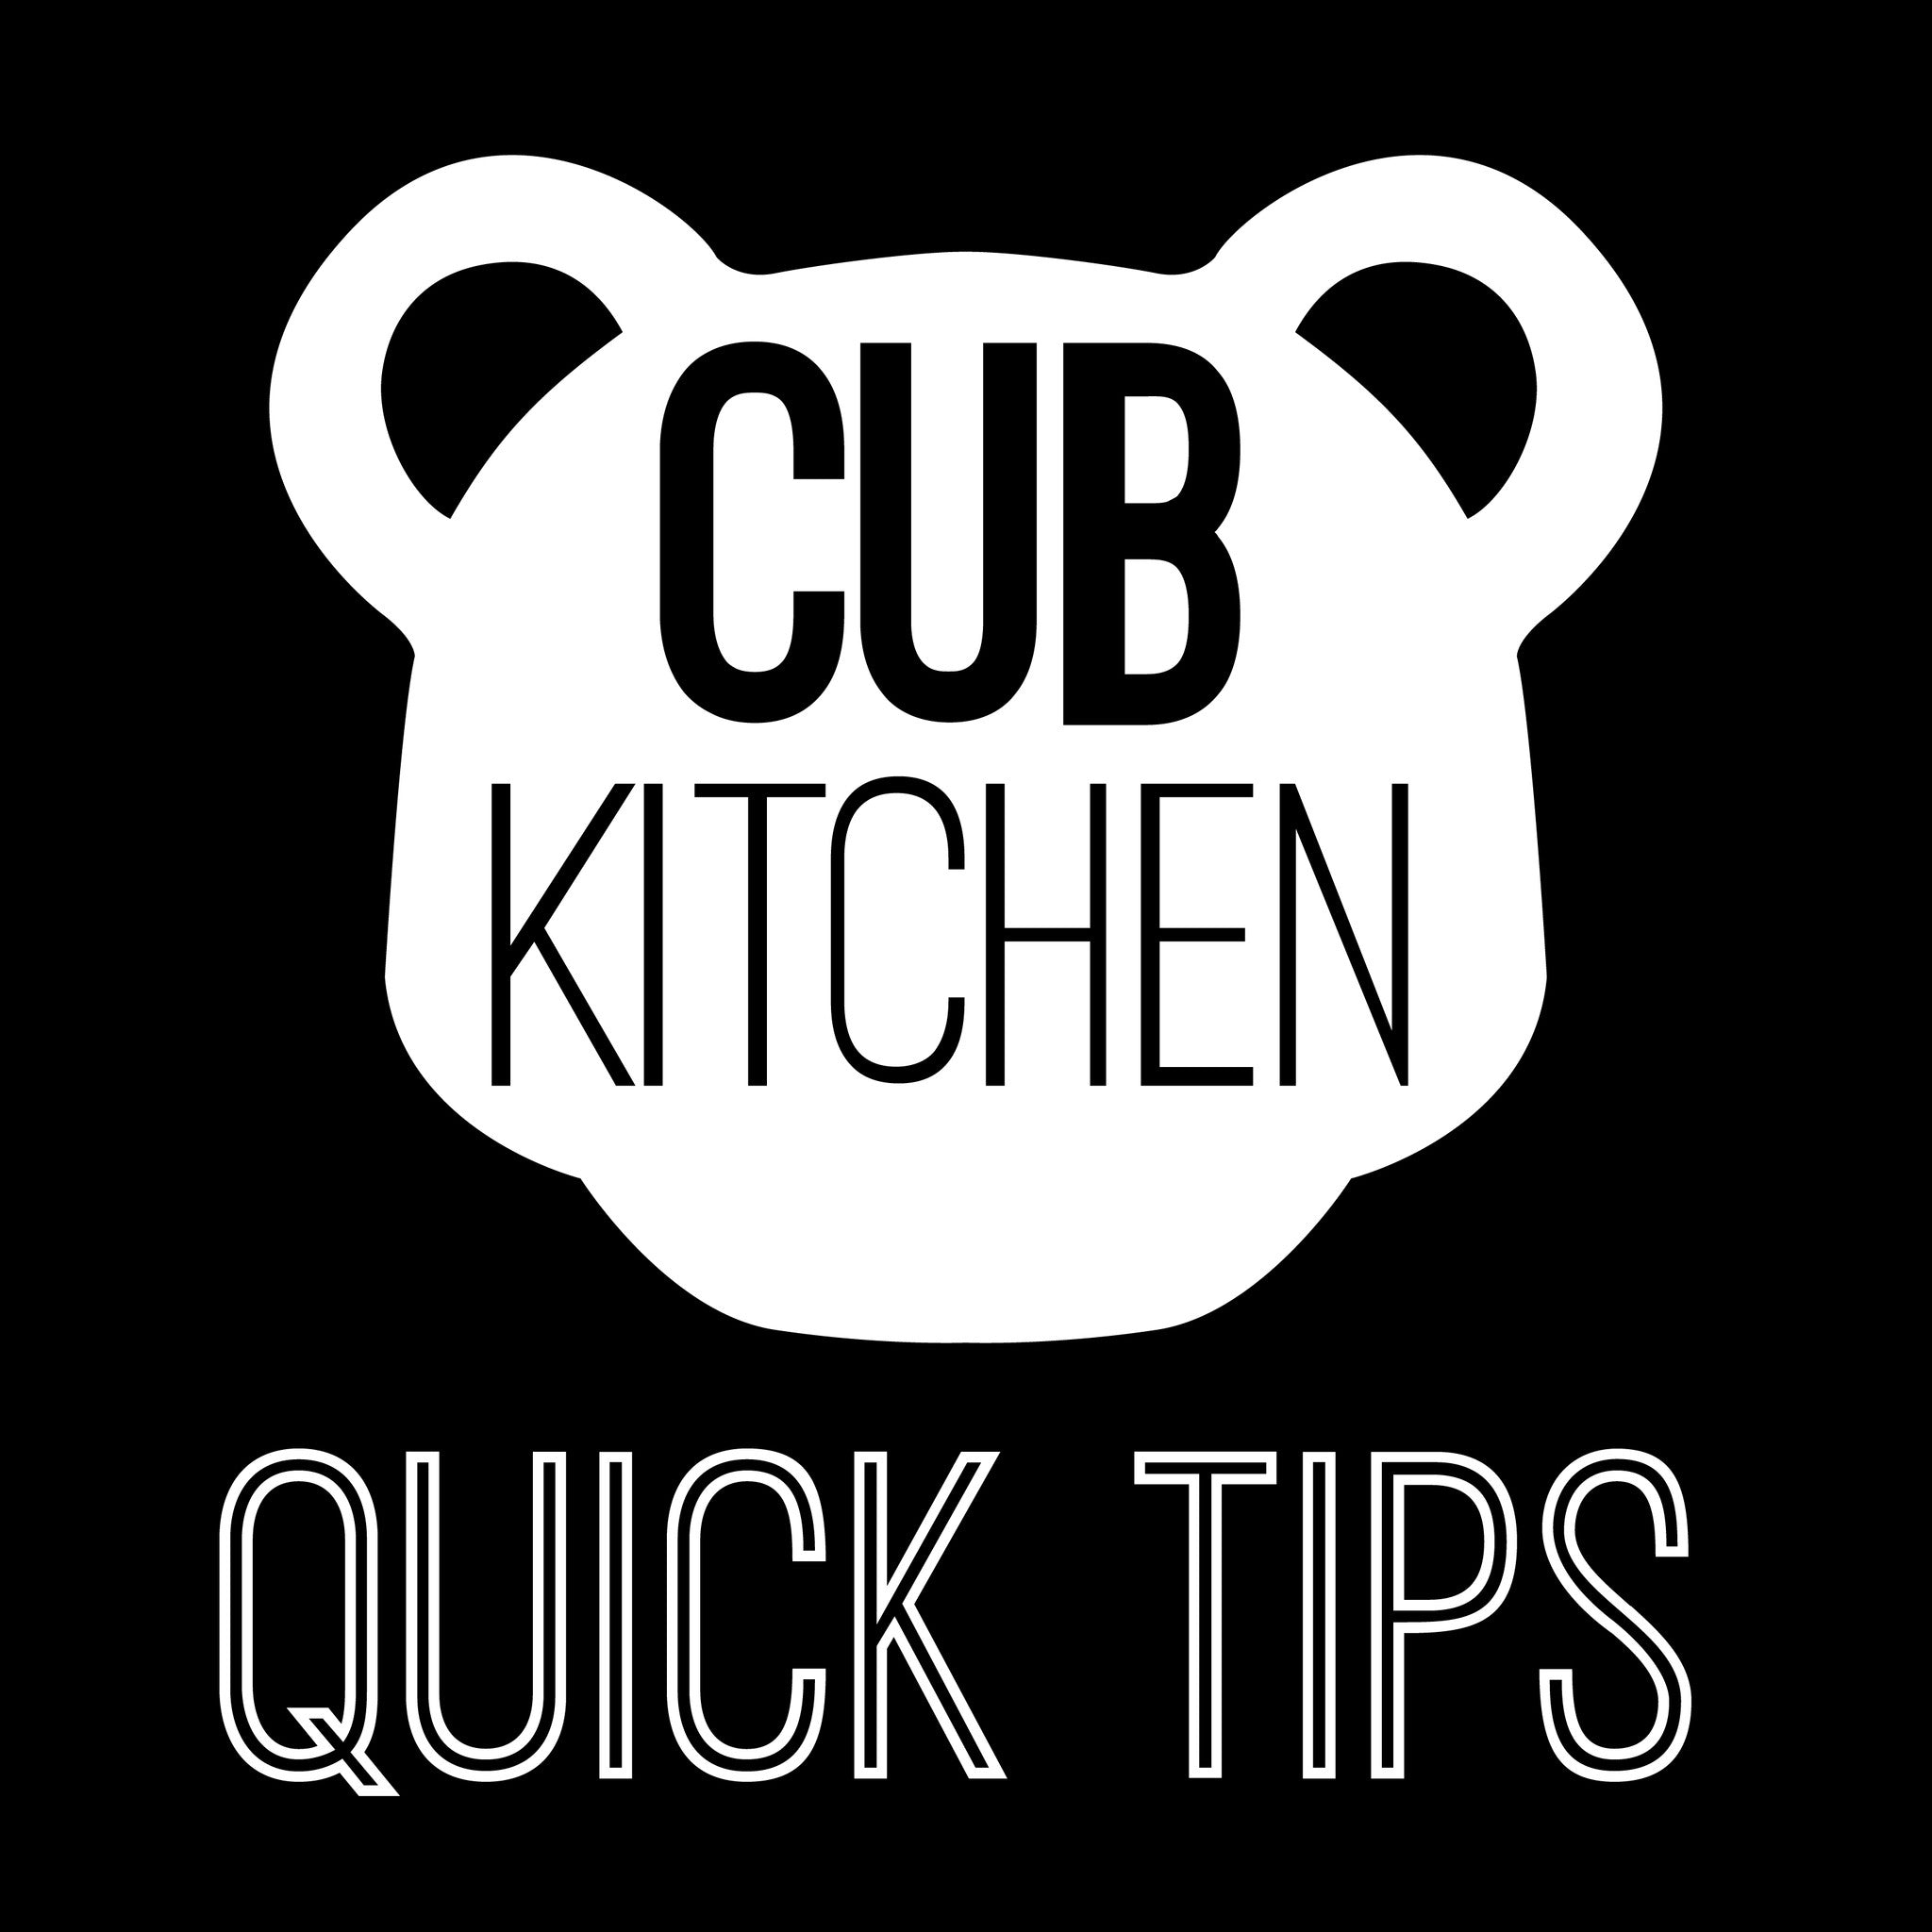 CUB KITCHEN - QUICK TIPS - STINKY SPONGE